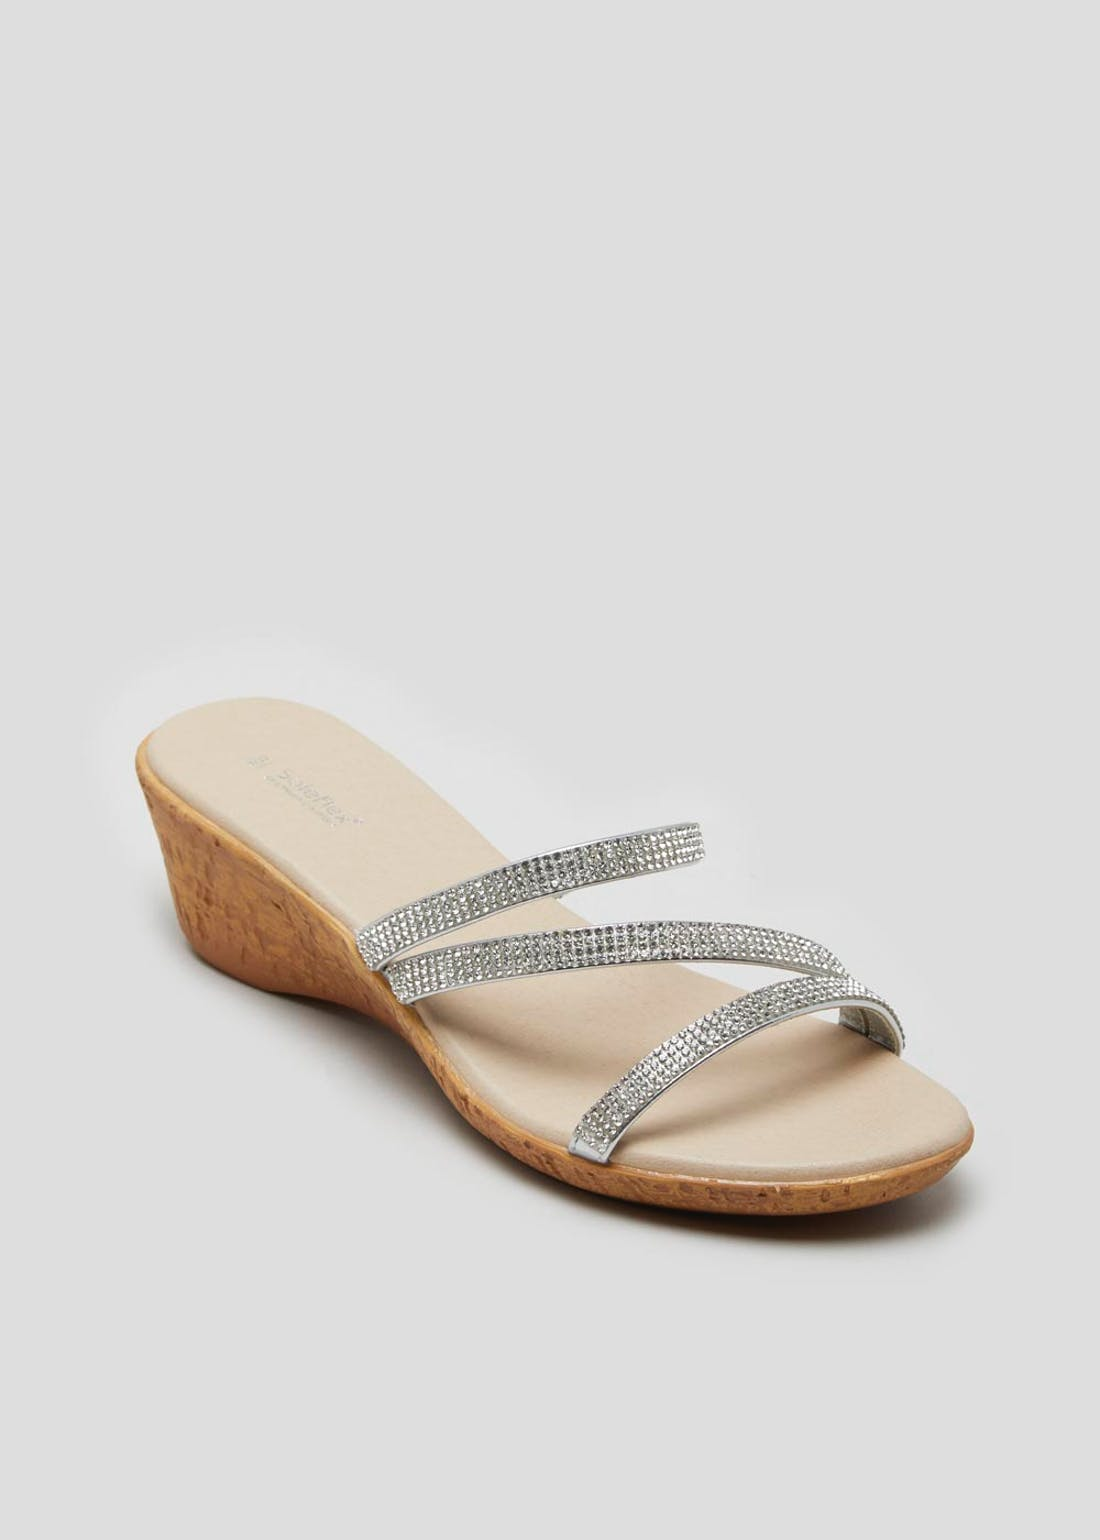 Soleflex Diamante Wedge Sandals